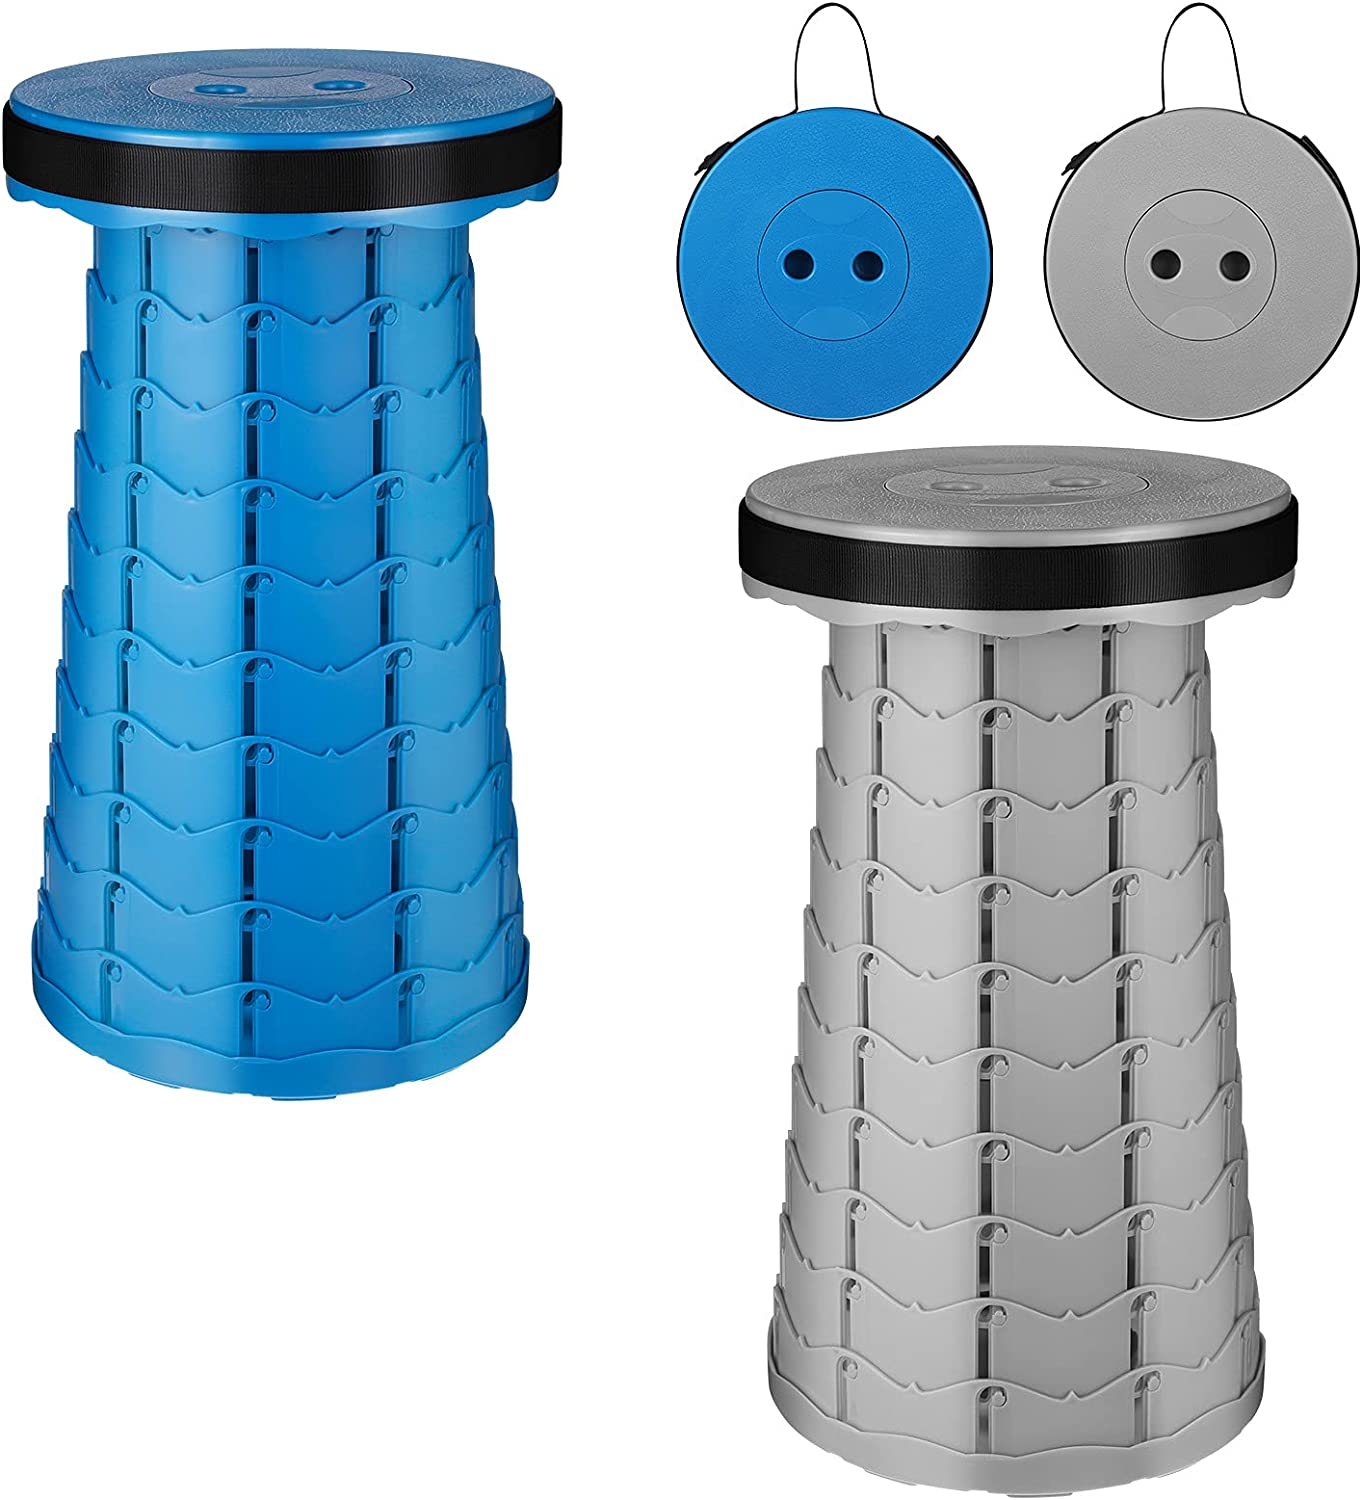 2 Soldering Challenge the lowest price of Japan ☆ Pack Portable Folding Retractable Stool Collapsible Stools